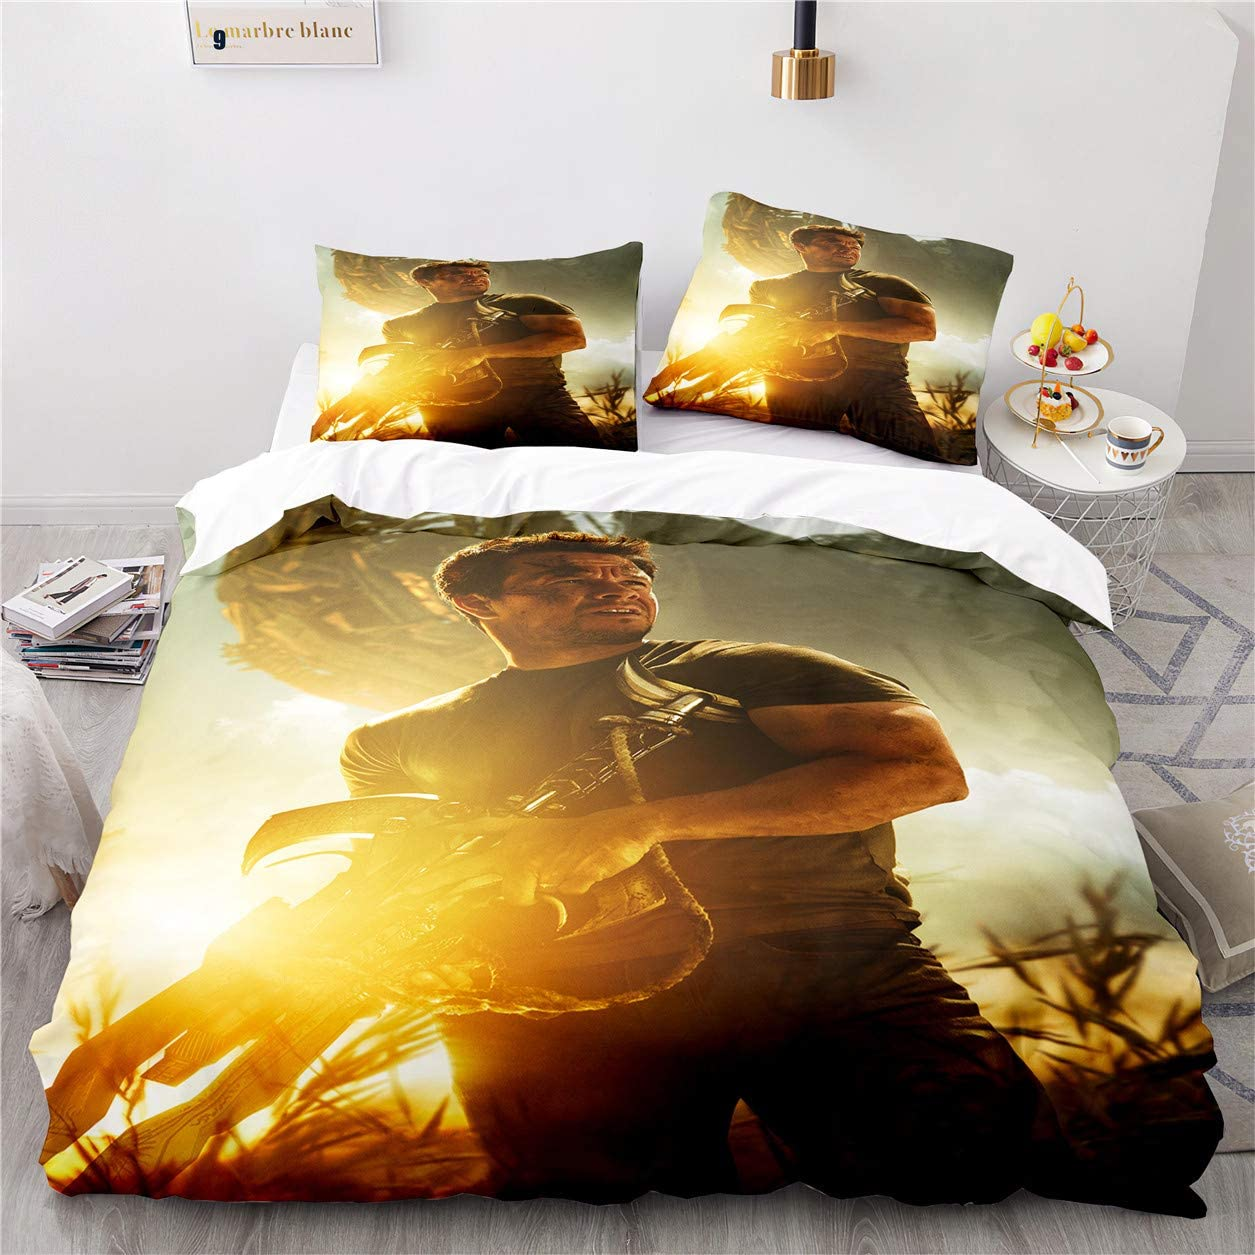 SOEWBBER 3D Reservation Transformers Bumblebee Printing Queen Si Set El Paso Mall Bedding